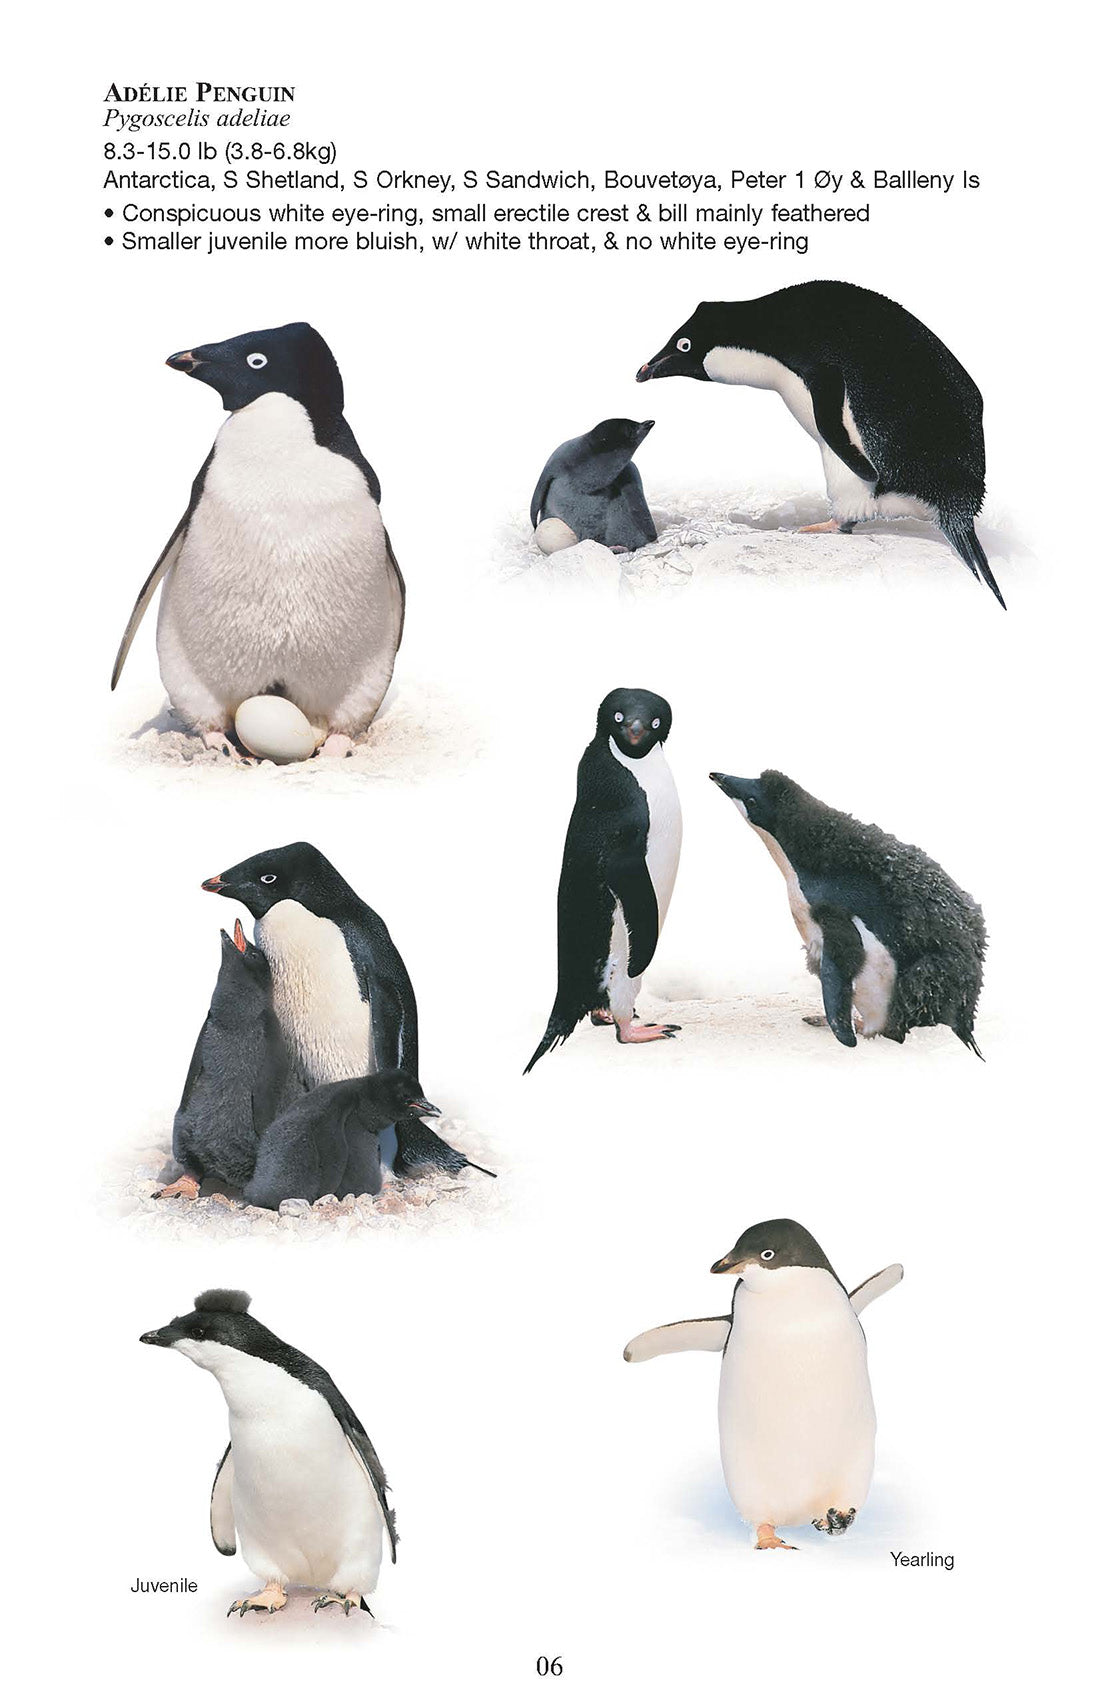 Birds and Mammals of the Antarctic, Subantarctic and Falkland Islands